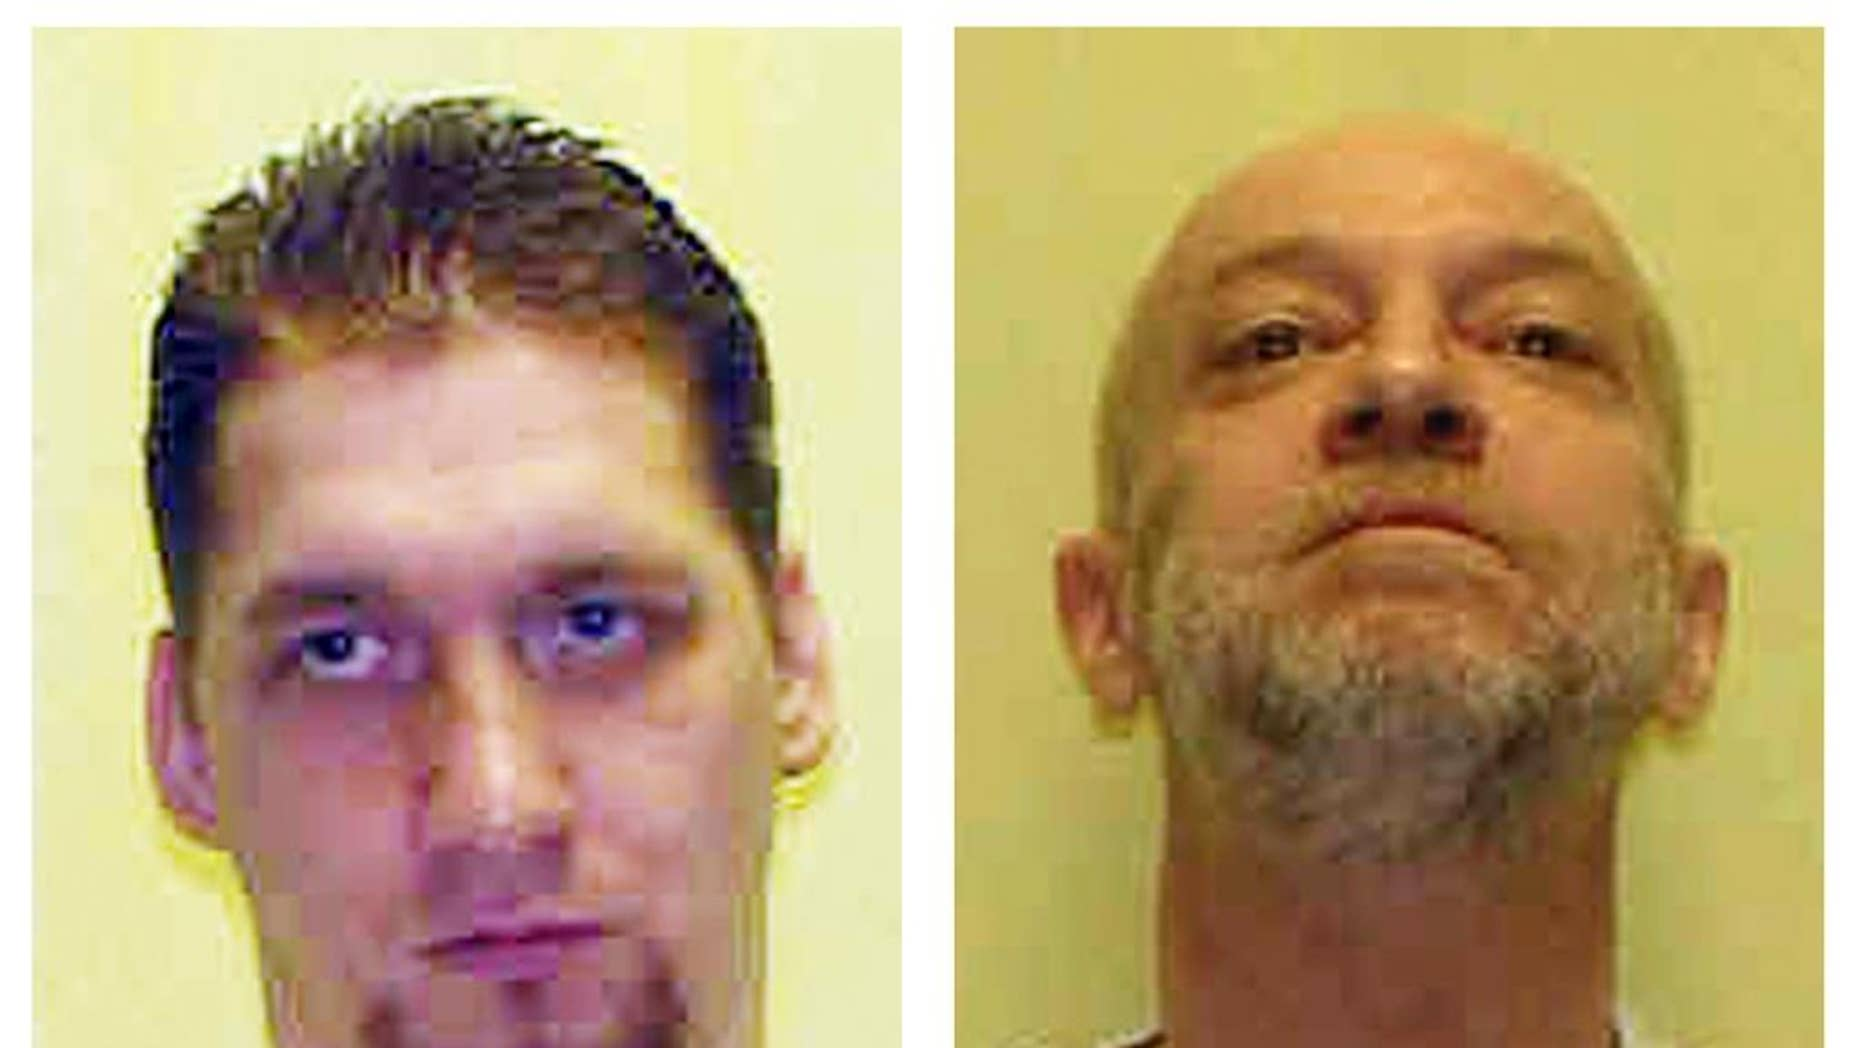 These undated file photos provided by the Ohio Department of Rehabilitation and Corrections show death row inmates Ronald Phillips and Raymond Tibbetts. Phillips' execution is scheduled for Feb. 11, 2015, and Tibbetts' for March 17, but, with Ohio's supply of lethal injection drugs expiring April 1, the state won't be able to carry out executions under its current system unless it finds a source for more drugs. (AP Photo/Ohio Dept. of Rehabilitation and Corrections, File)